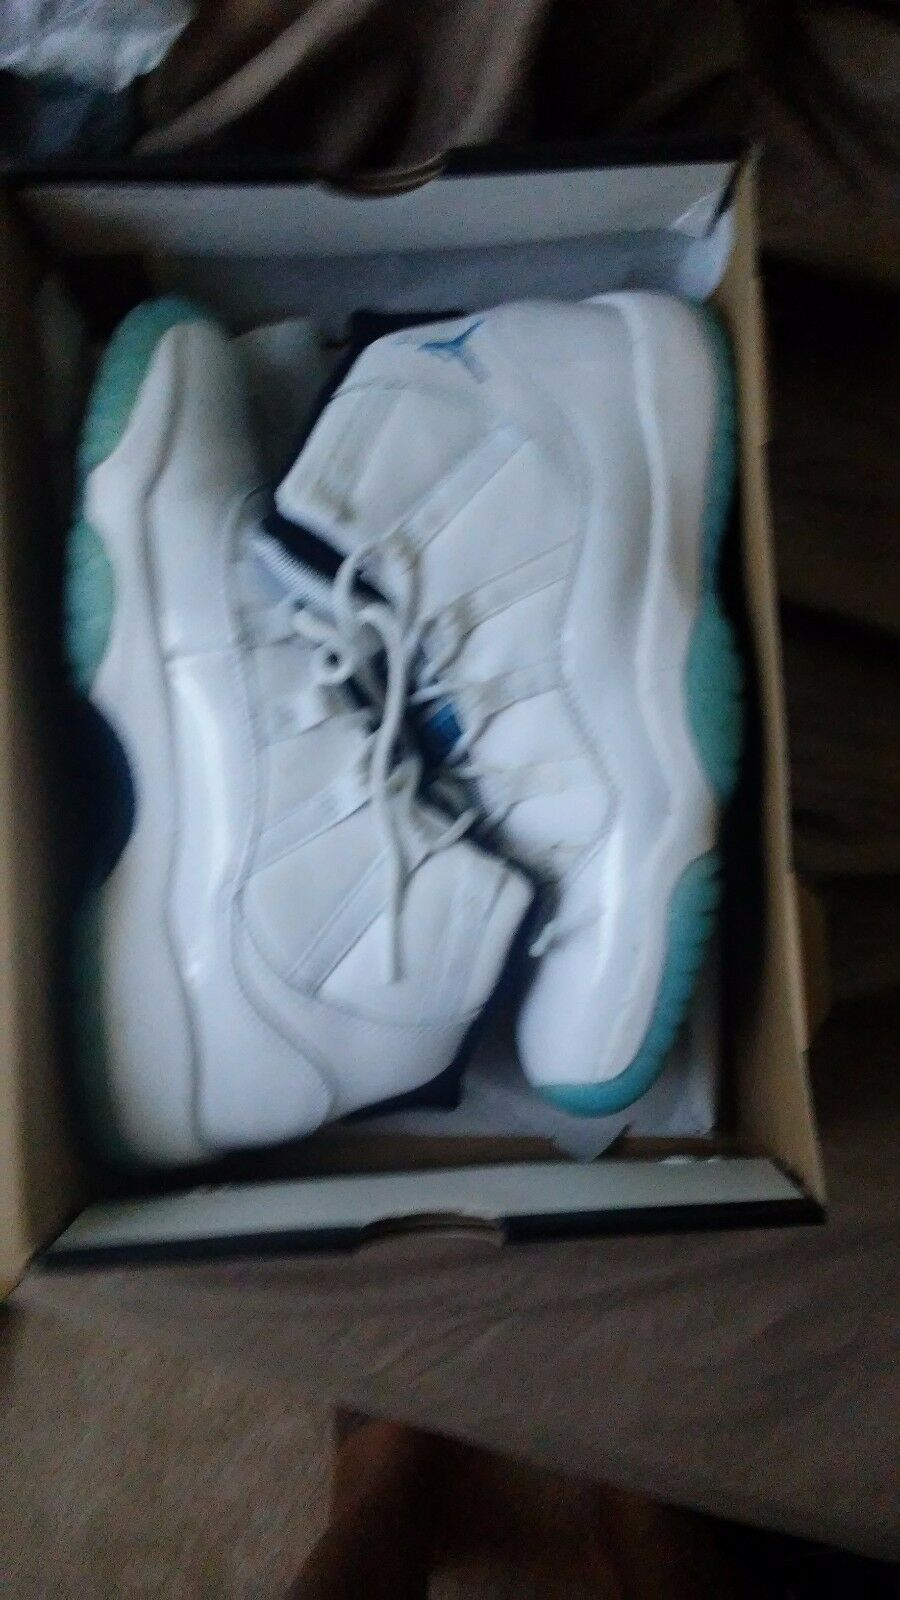 Nike Air Jordan 11 Legend Blue White Columbia XI Retro - 378037 117 - SIze 7y The most popular shoes for men and women